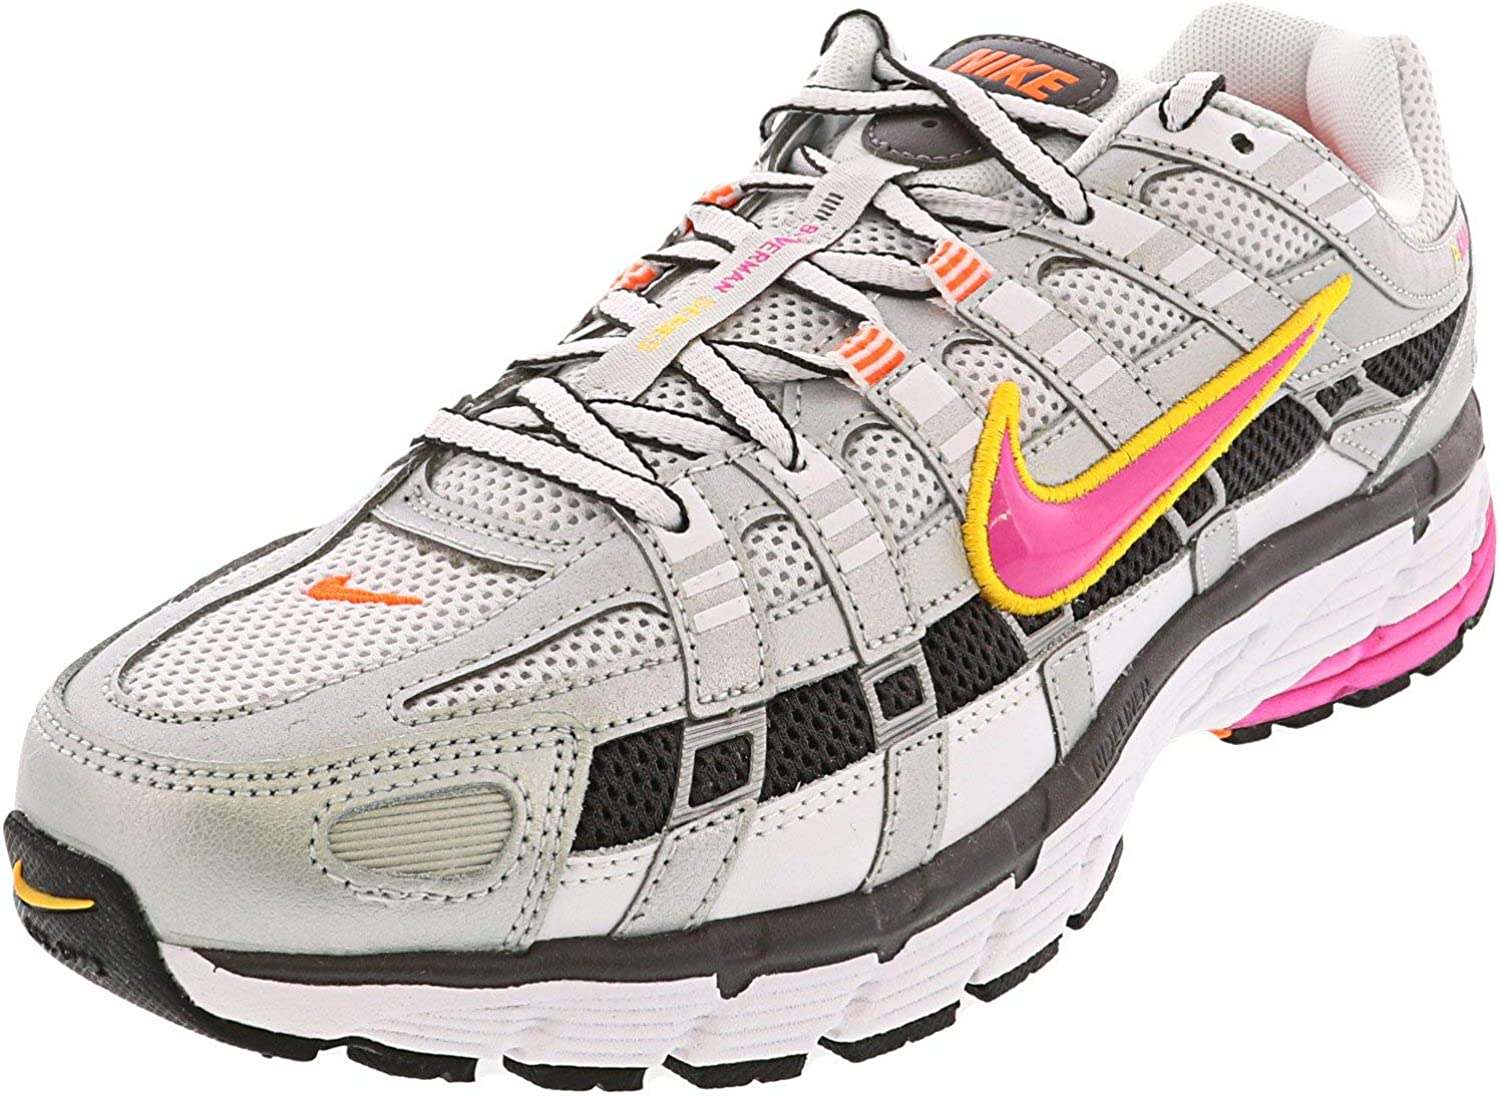 Nike Womens P-6000 Performance Lowtop Athletic Shoe